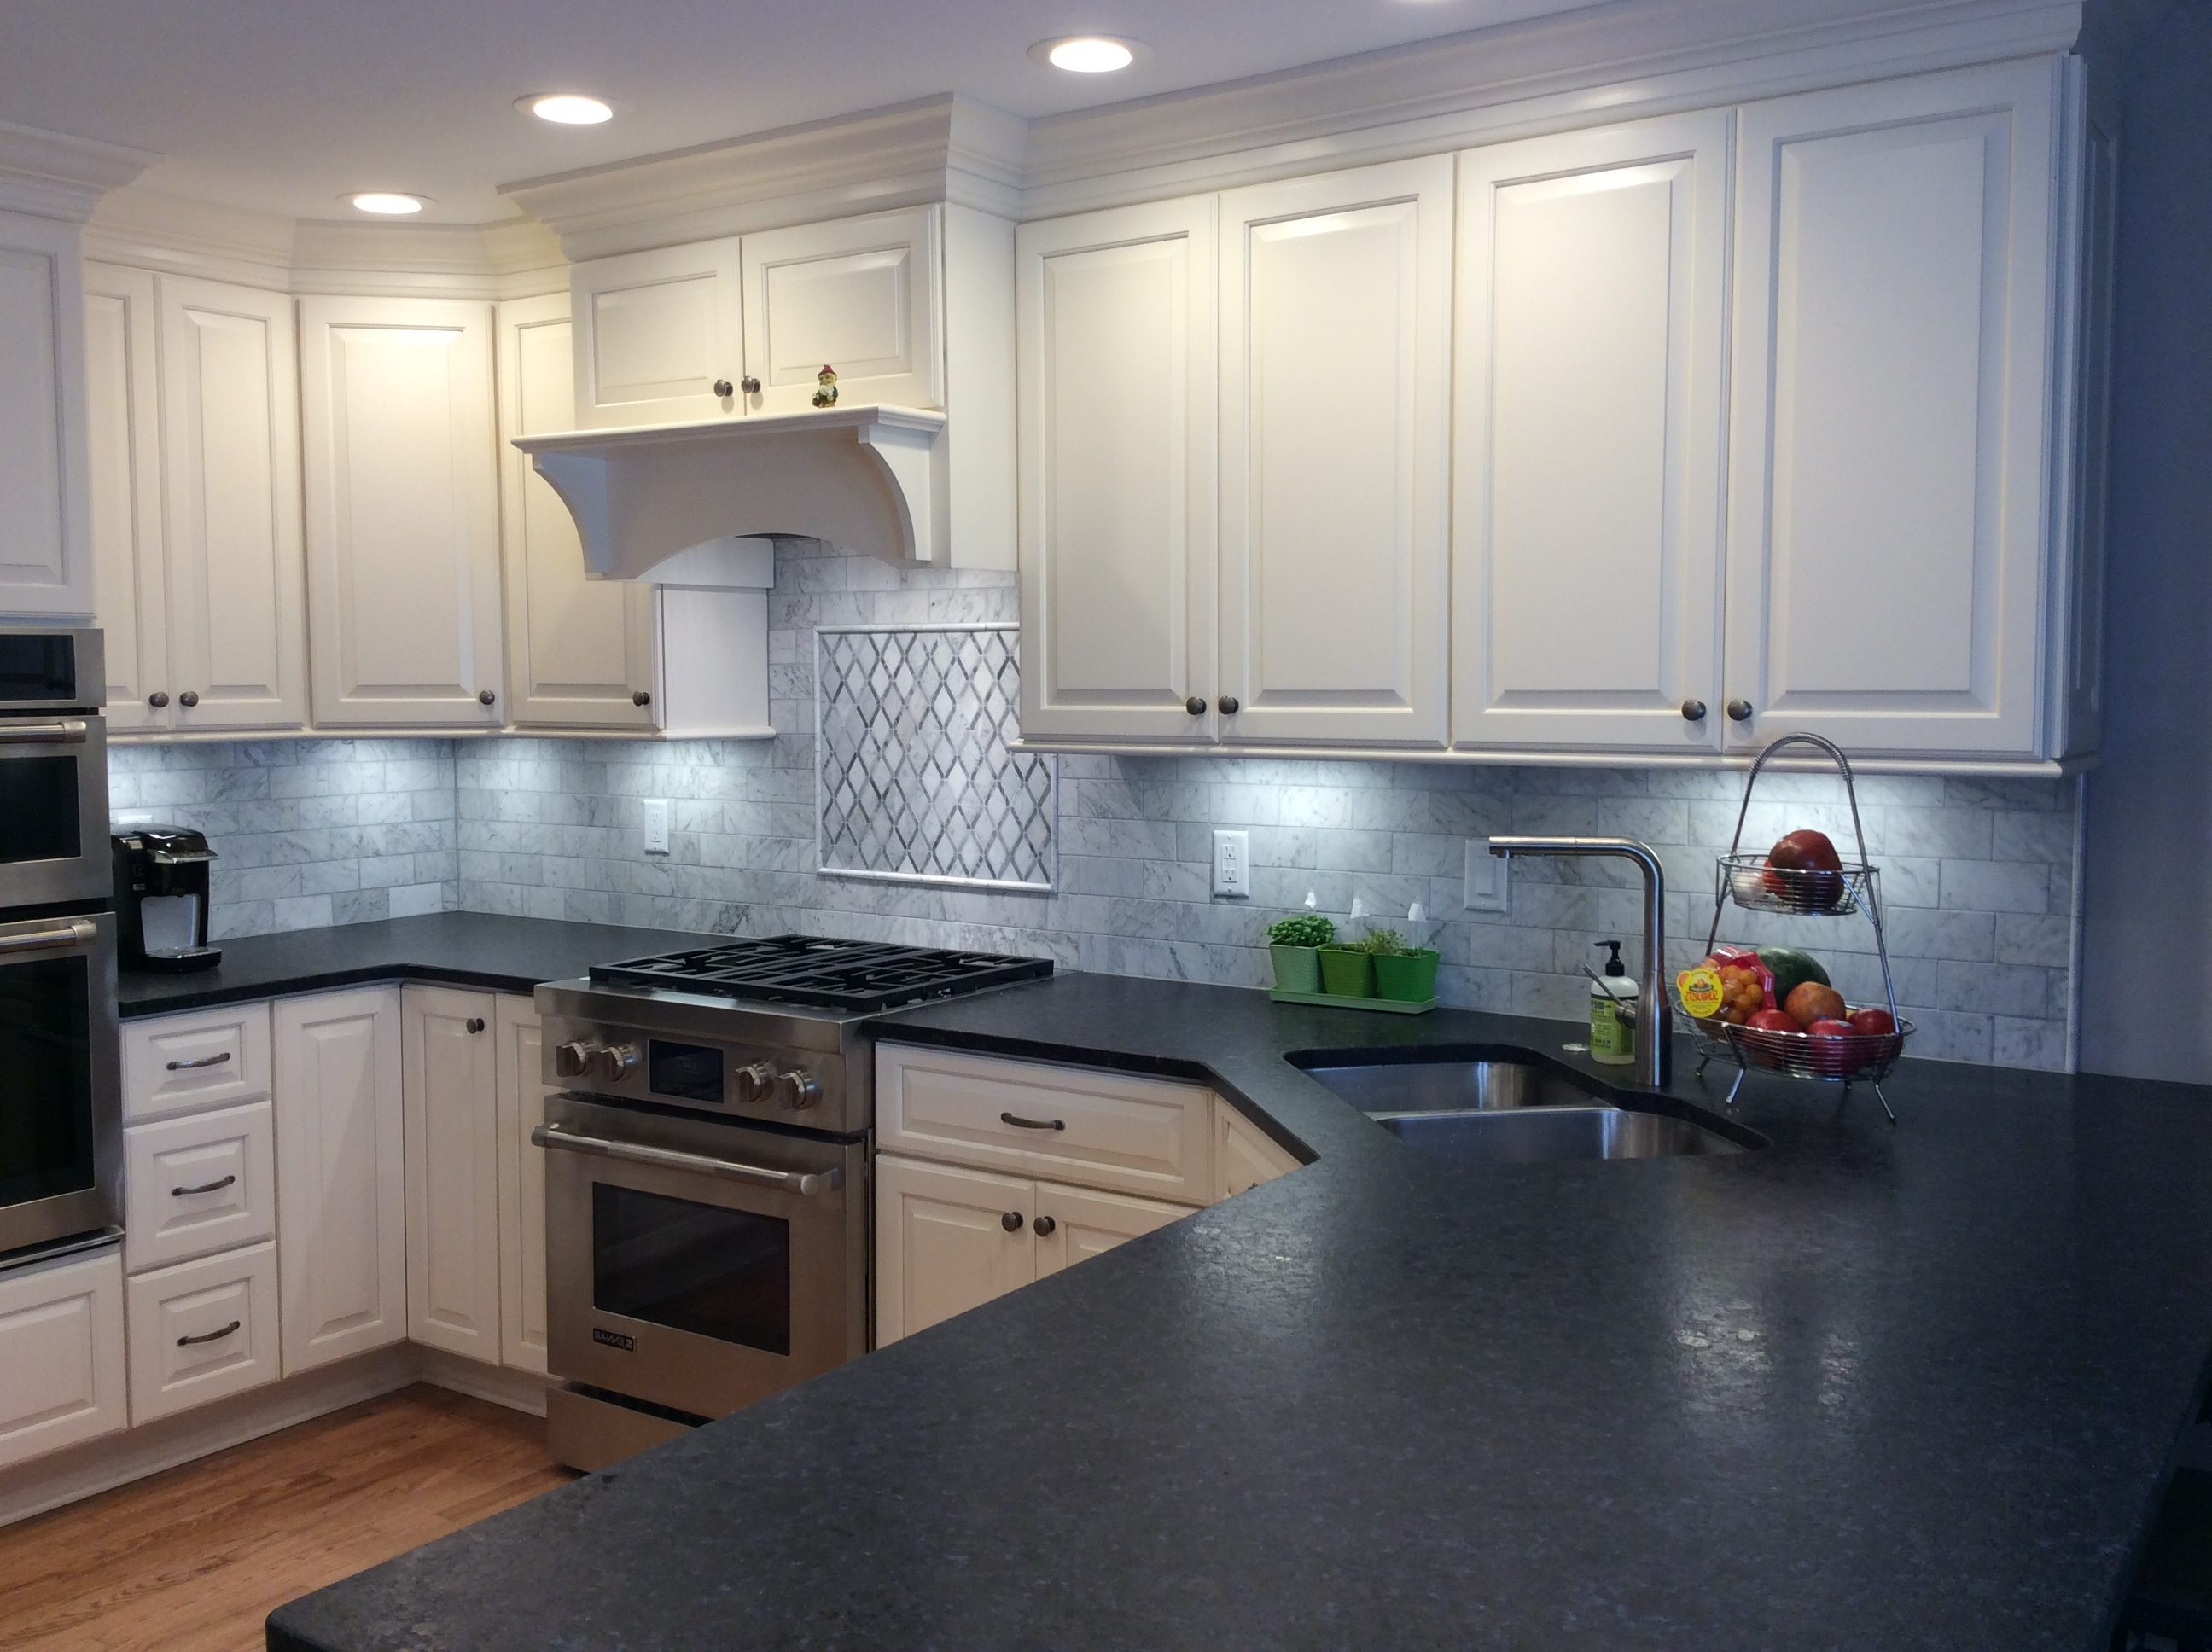 Charmant Pittsburgh, Explore The Possibilities With Creative Design U0026 Functional  Improvements To Your Kitchen. Enjoy And Entertain With A New Theme And  Color That ...